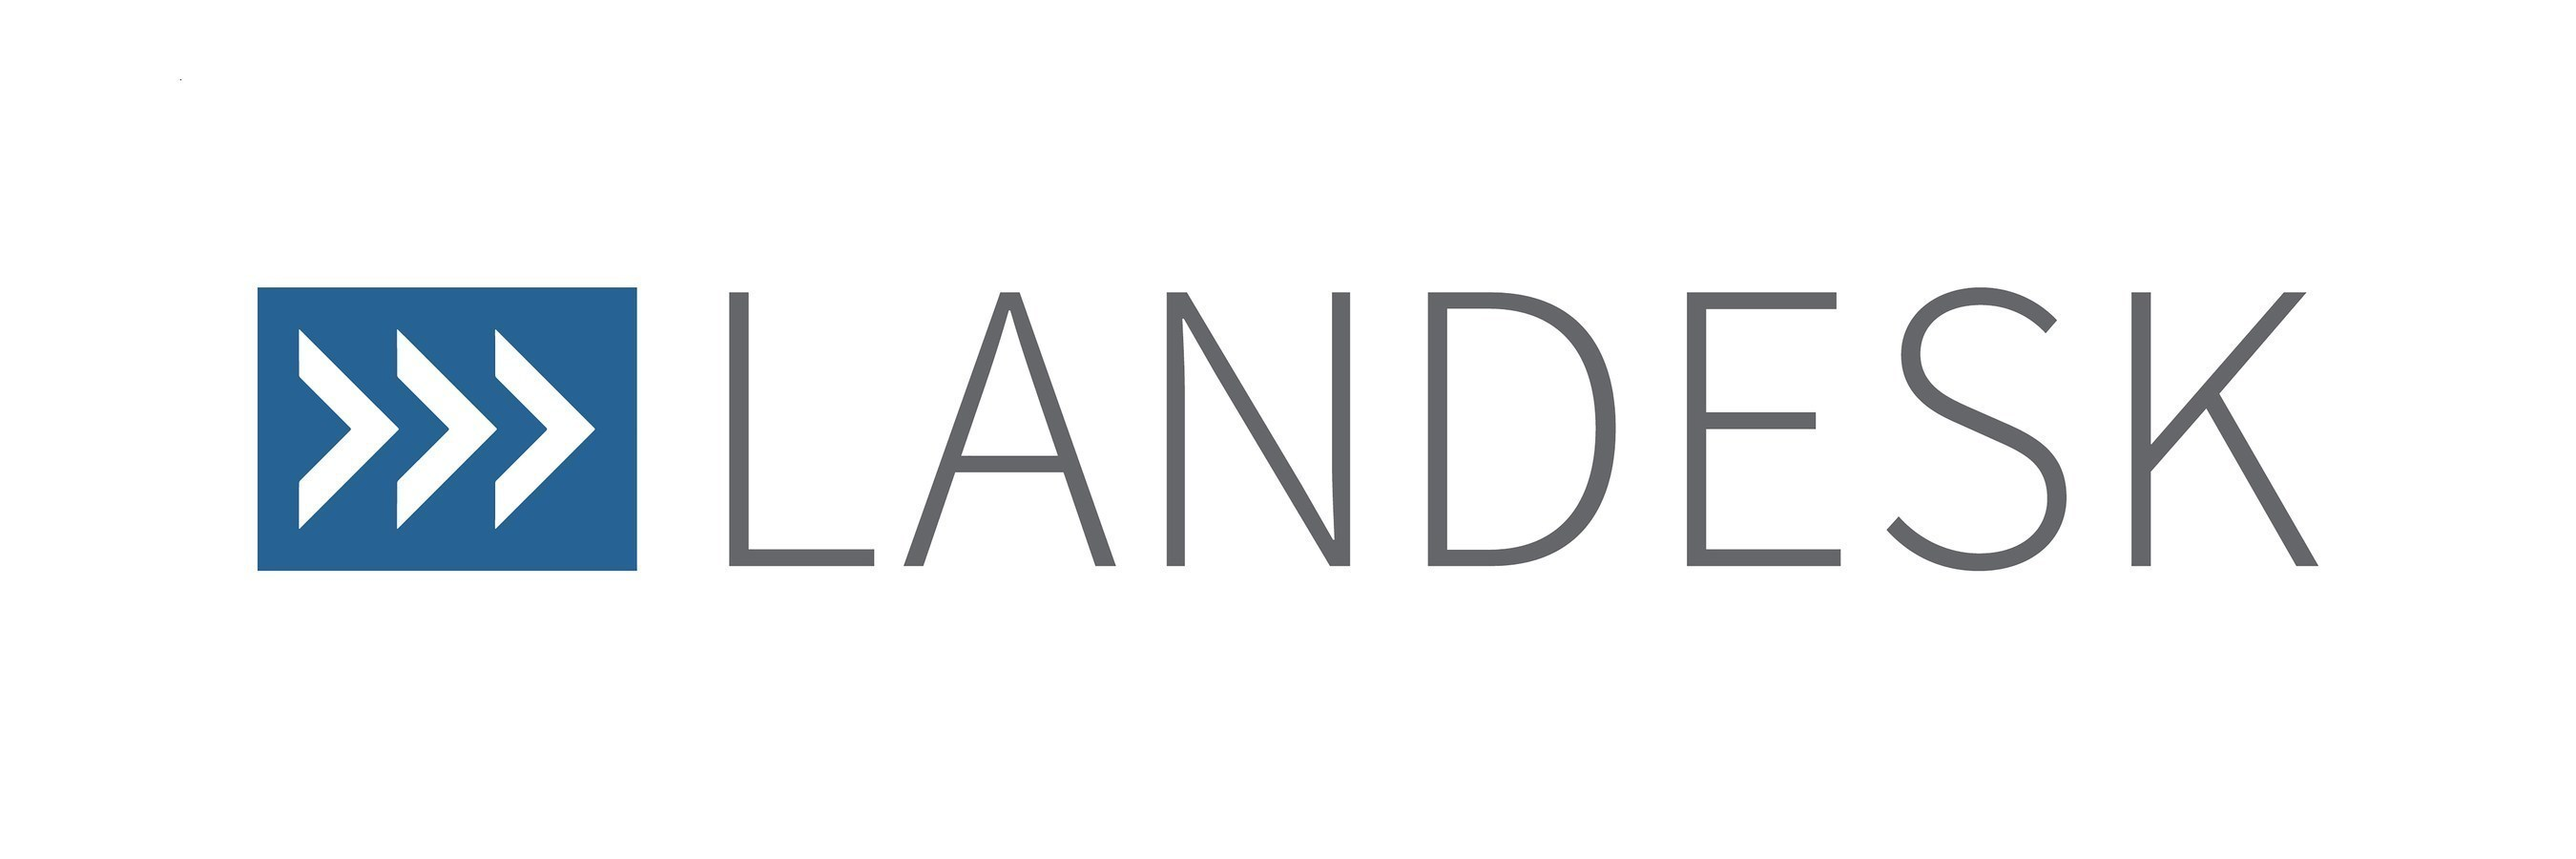 Landesk Achieves Highest Level Of Pink Verification With New Asset